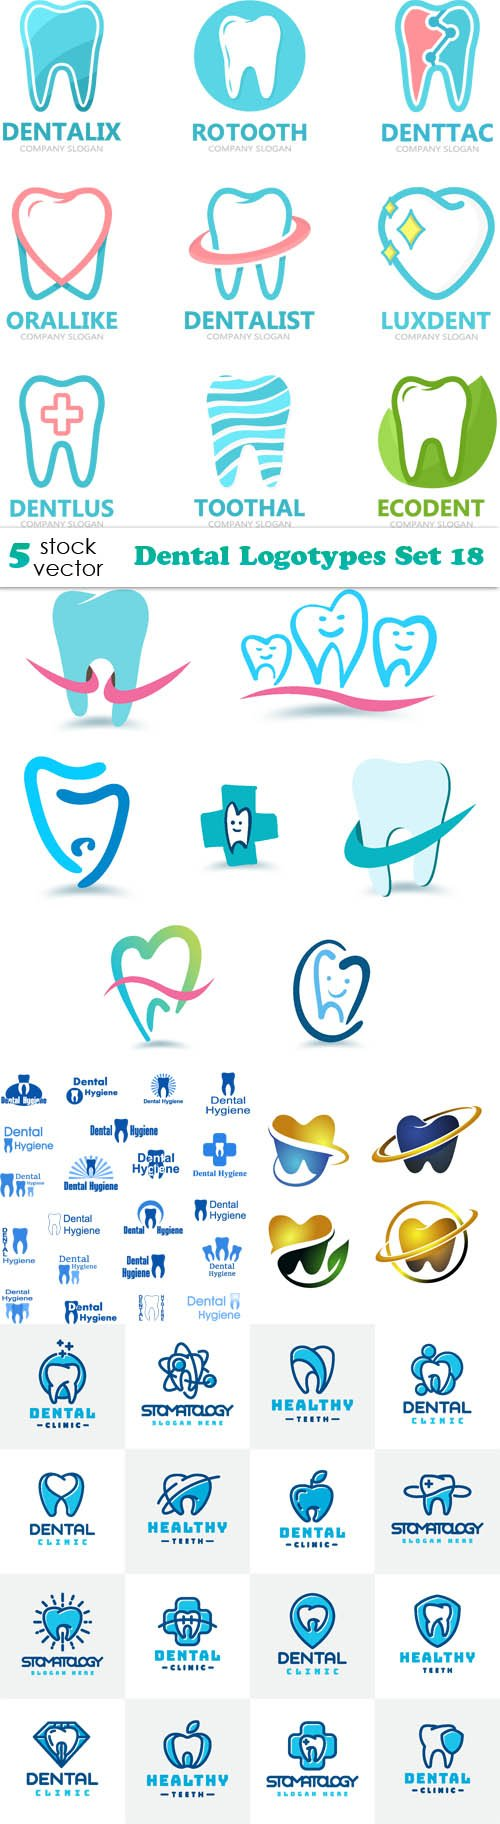 Vectors - Dental Logotypes Set 18